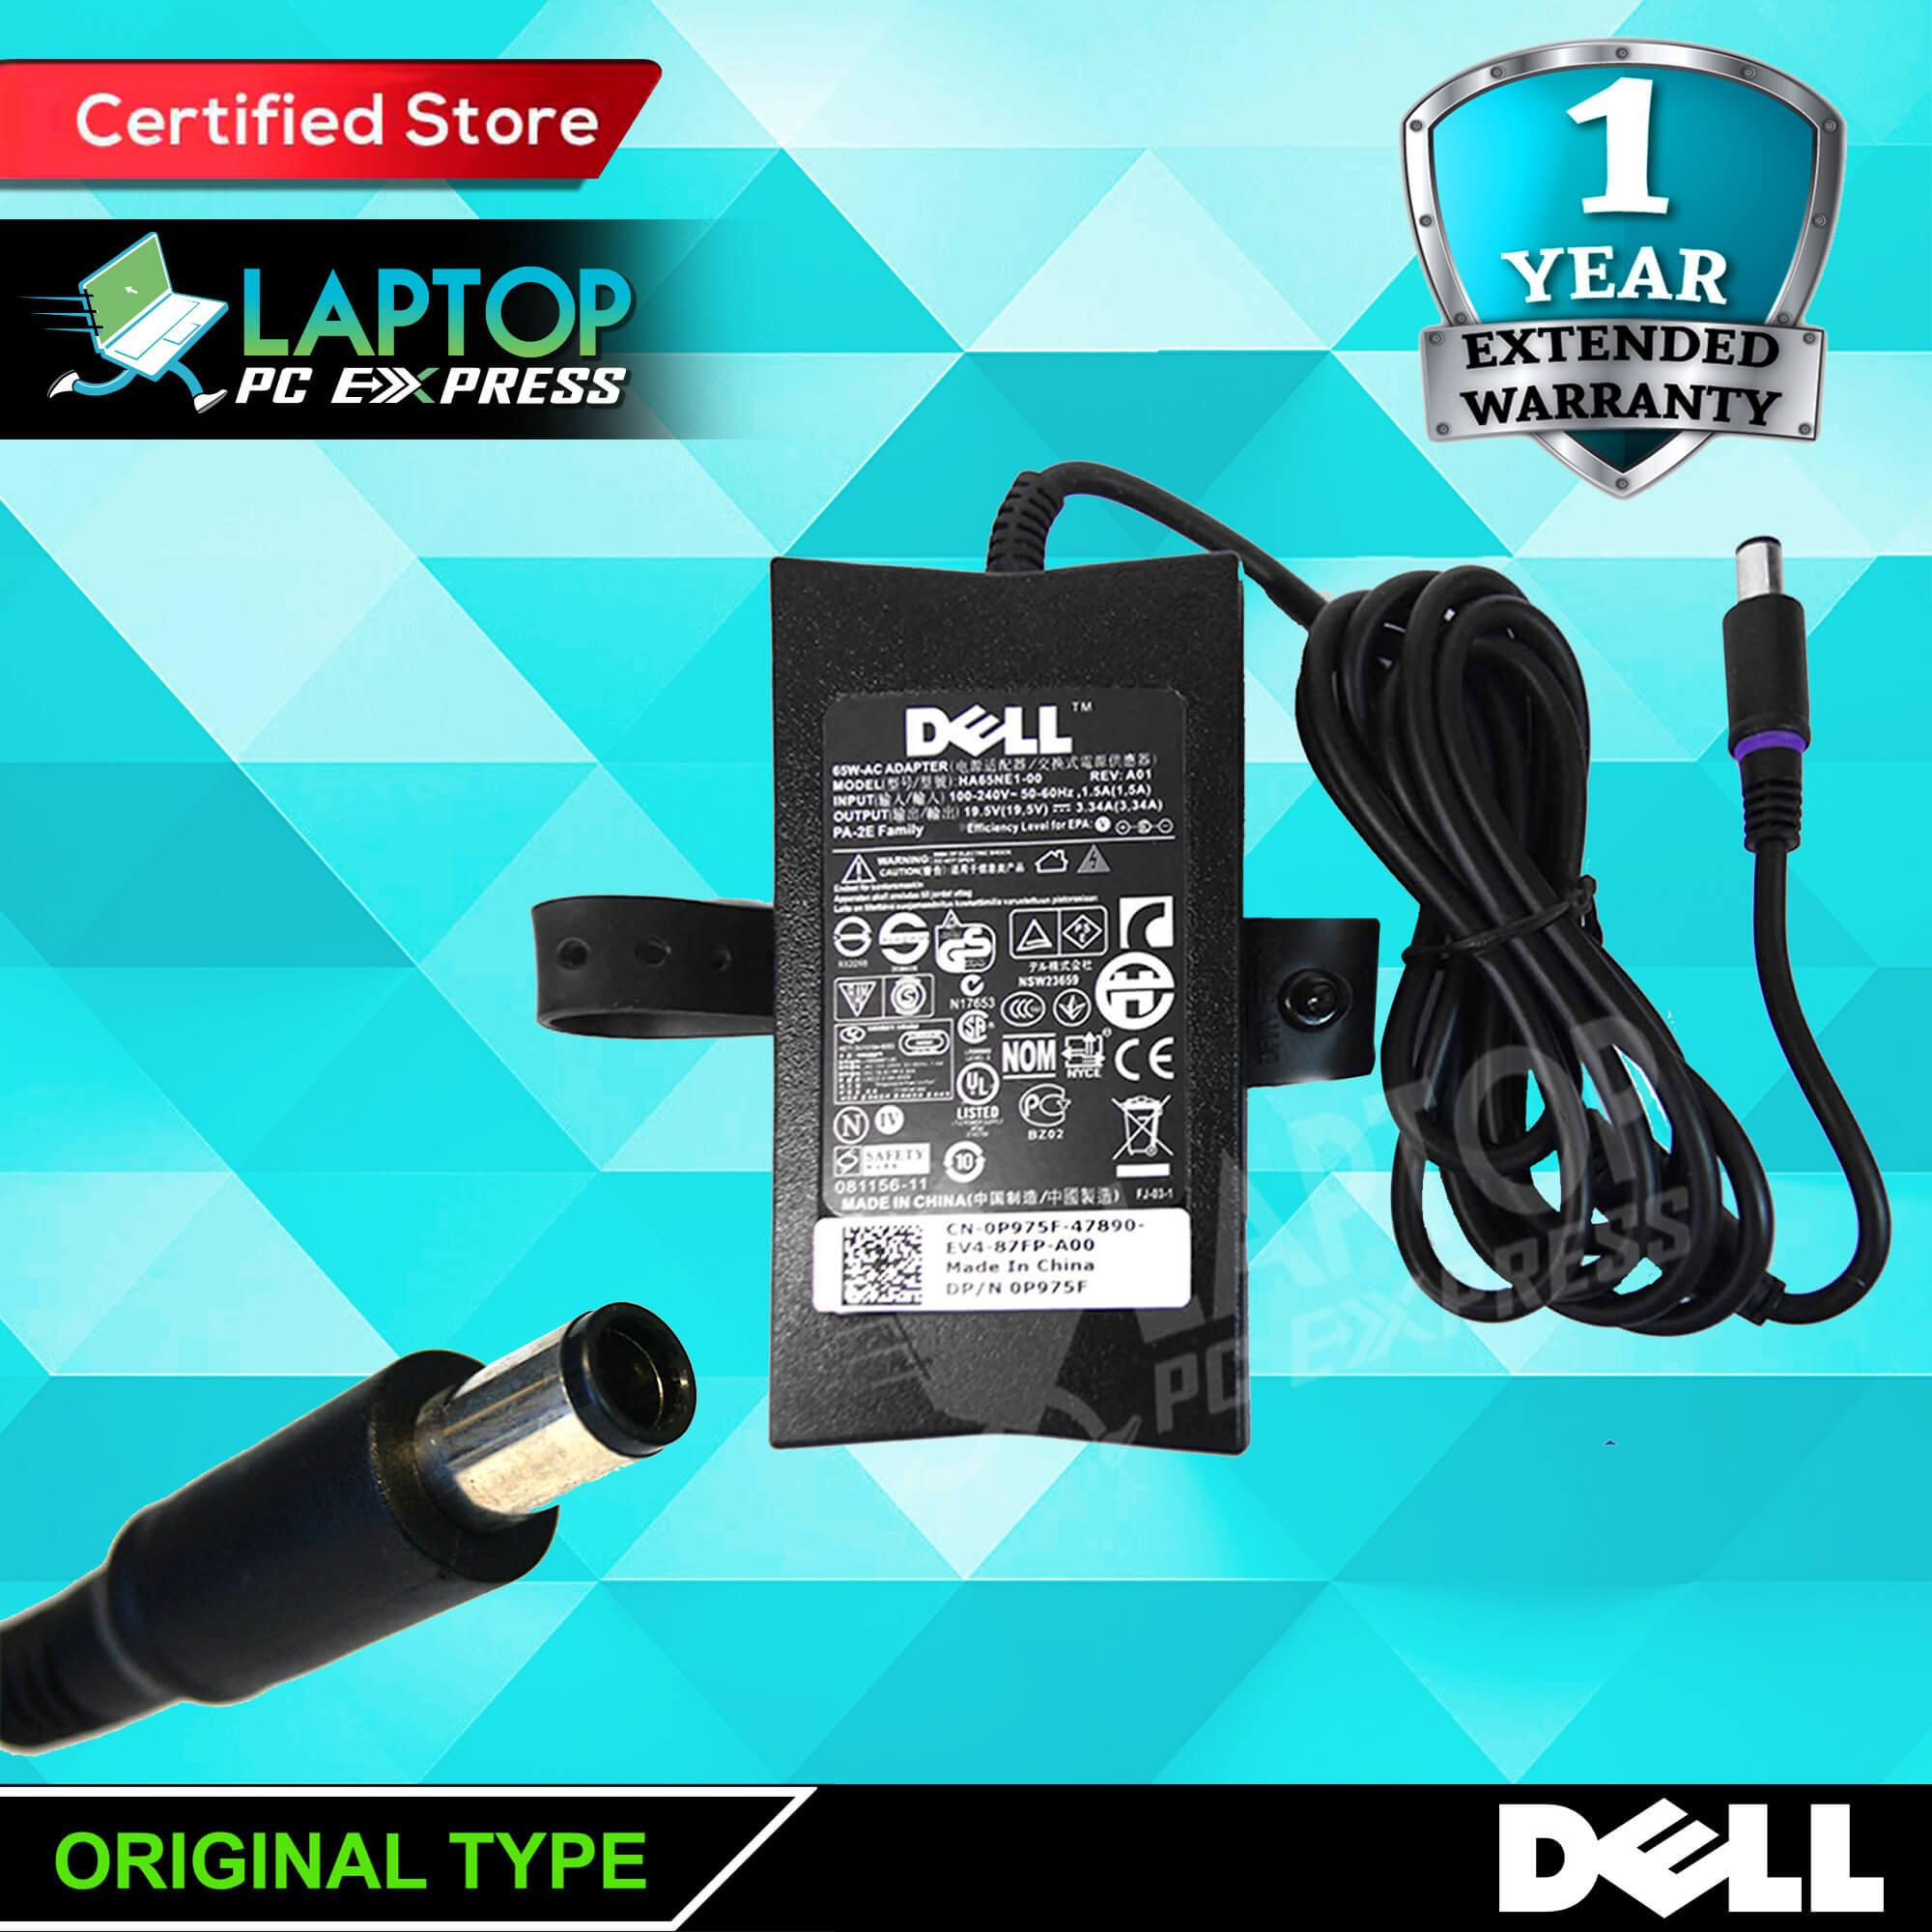 Dell Computer Accessories Philippines Pc For Sale Alienware M15x Power Button Circuit Board With Cable W 1 Year Original Laptop Charger 195v 334a 74mm 50mm